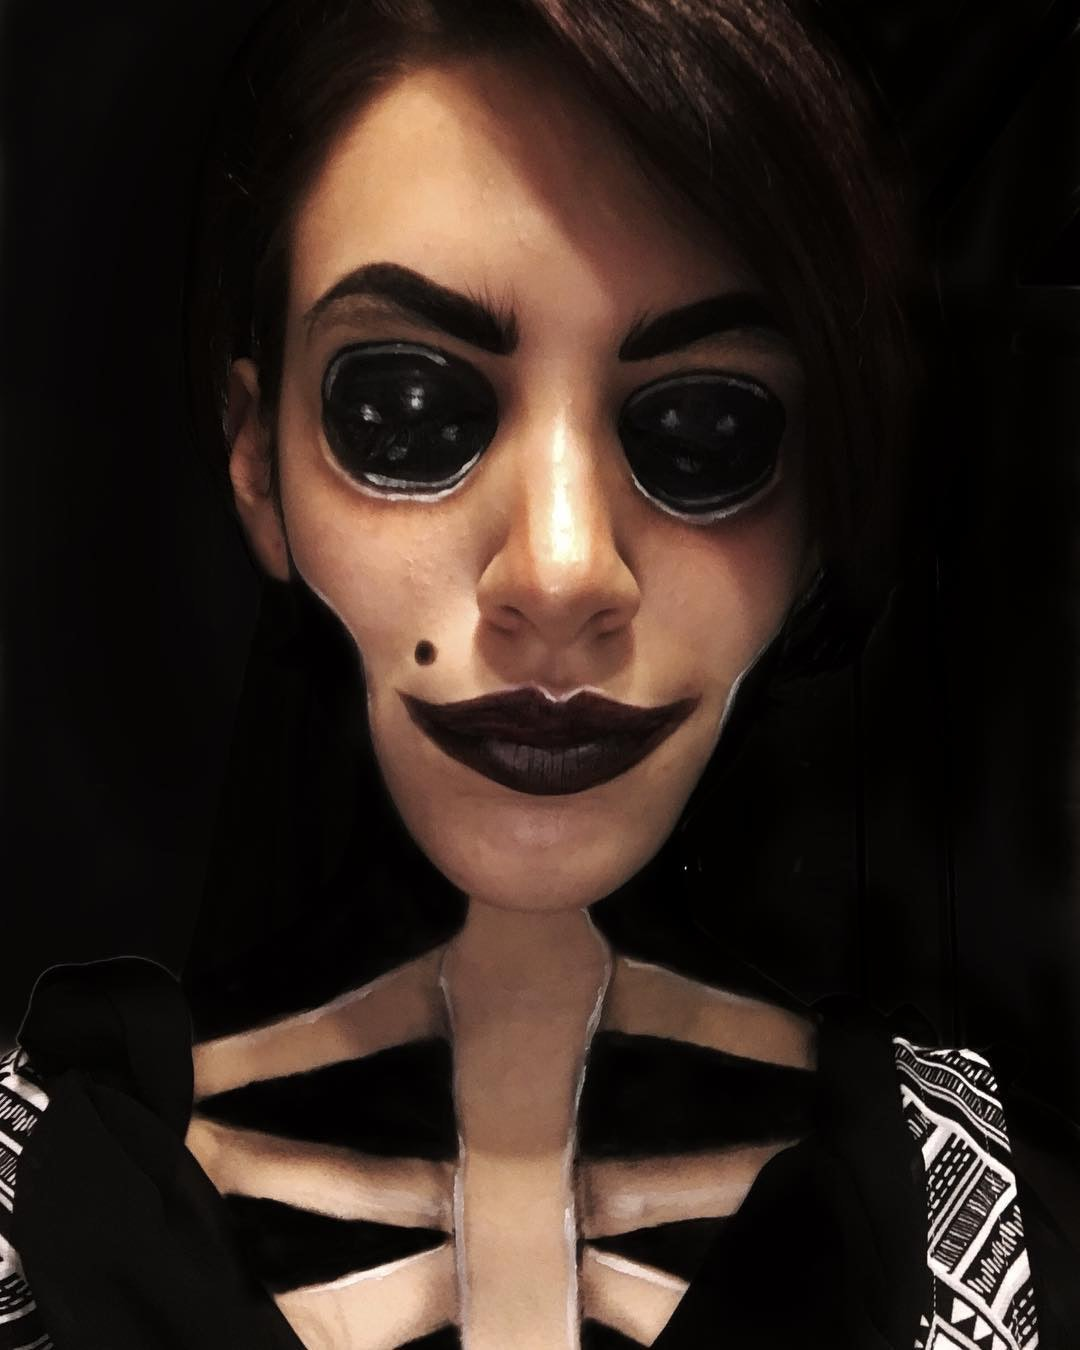 This Coraline Halloween Look Is The Stuff Dreams Nightmares Are Made Of